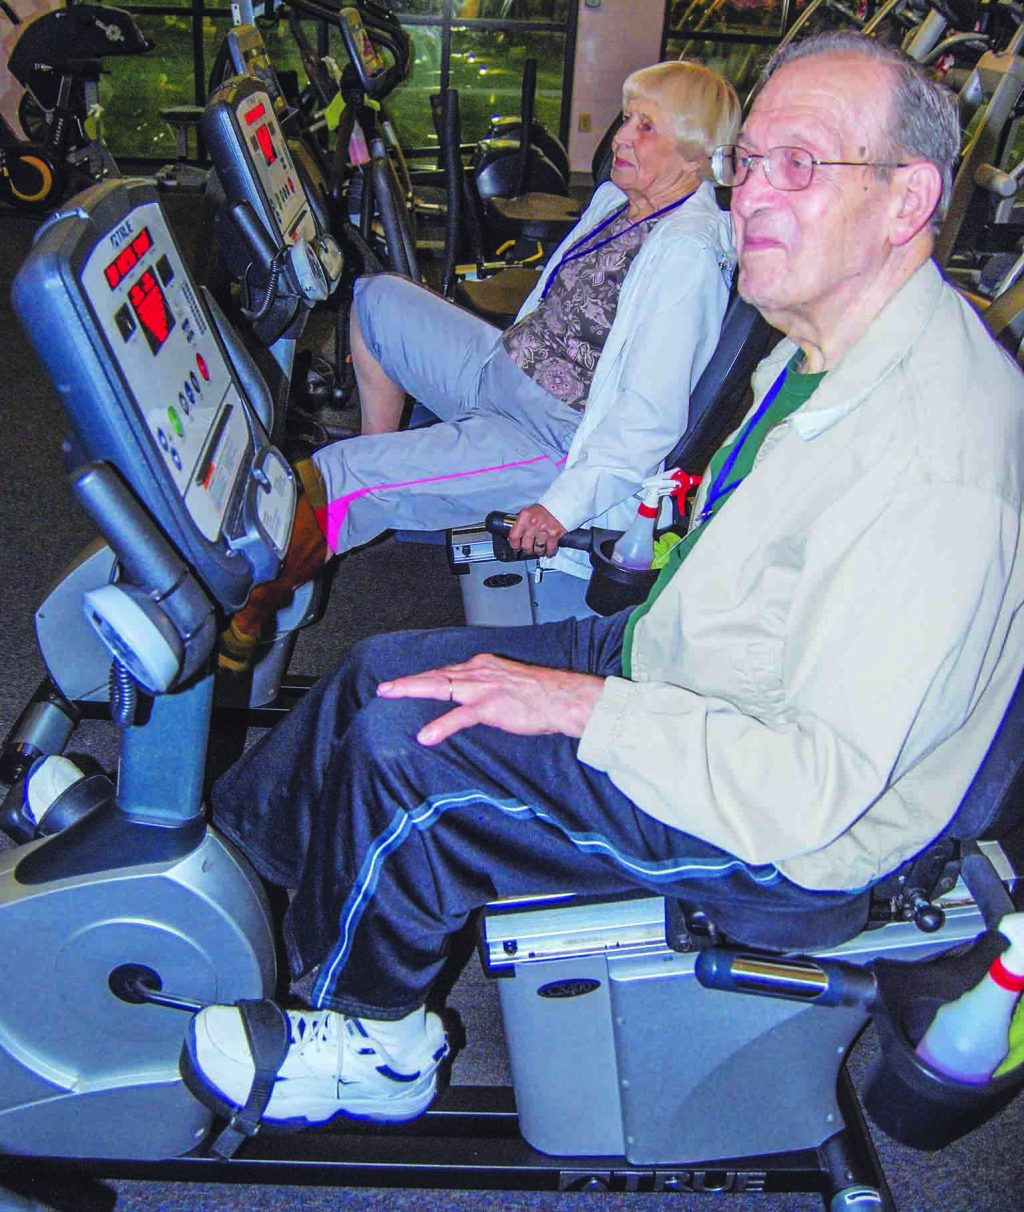 Most weekday mornings, Bob and Jean Reynolds kick off their day at 6 a.m. by riding stationary bikes side by side at the Jimmy Floyd Center in Lebanon, Tenn.